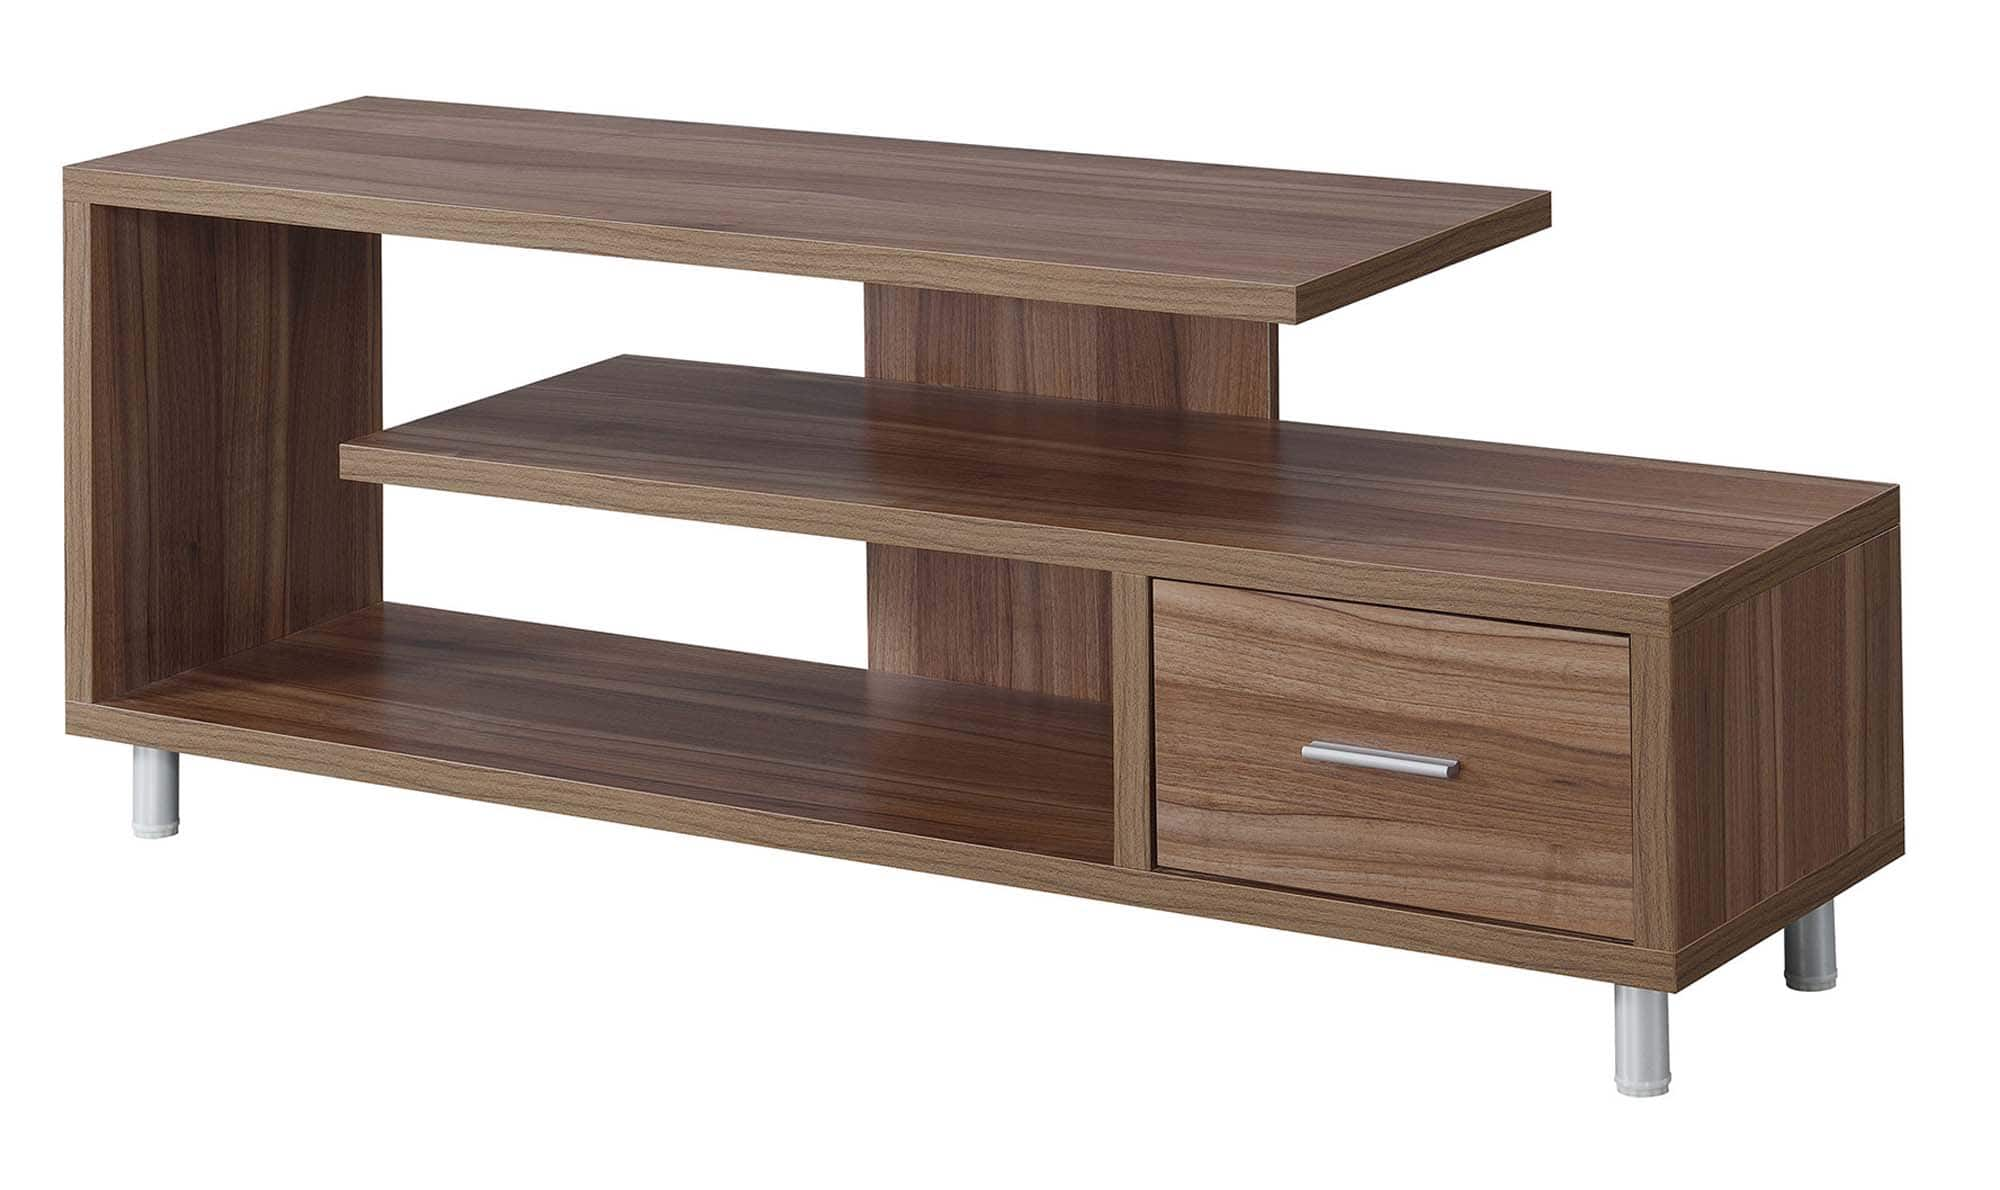 "Convenience Concepts Seal II 60"" TV Stand (Cappuccino) $109.12 + Free S/H"